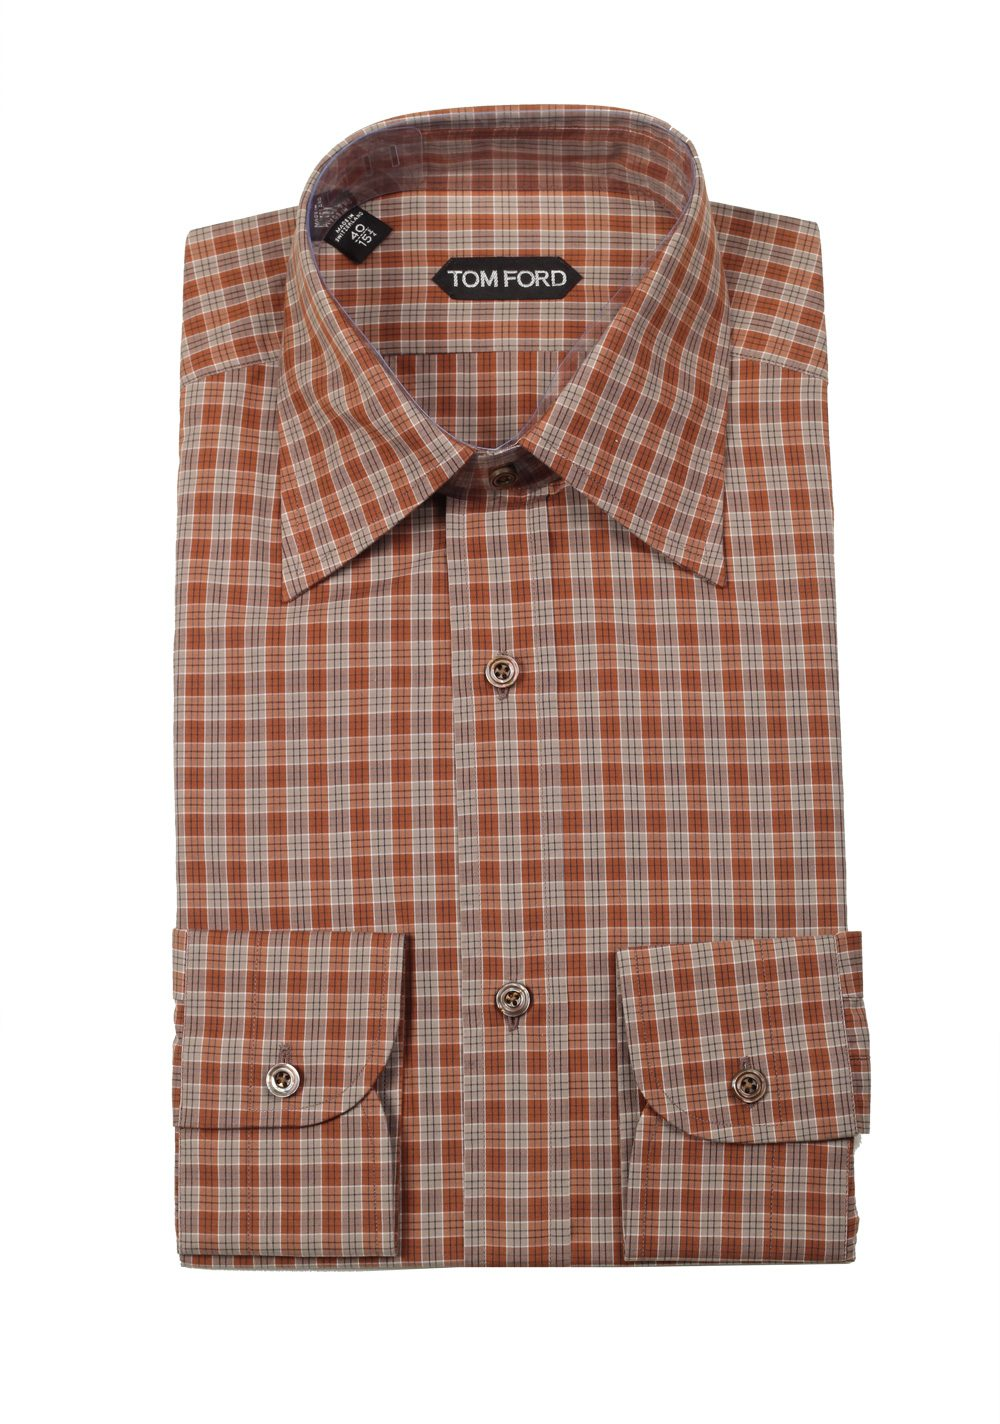 Tom ford checked brown dress shirt size 40 15 75 u s for Size 15 dress shirt